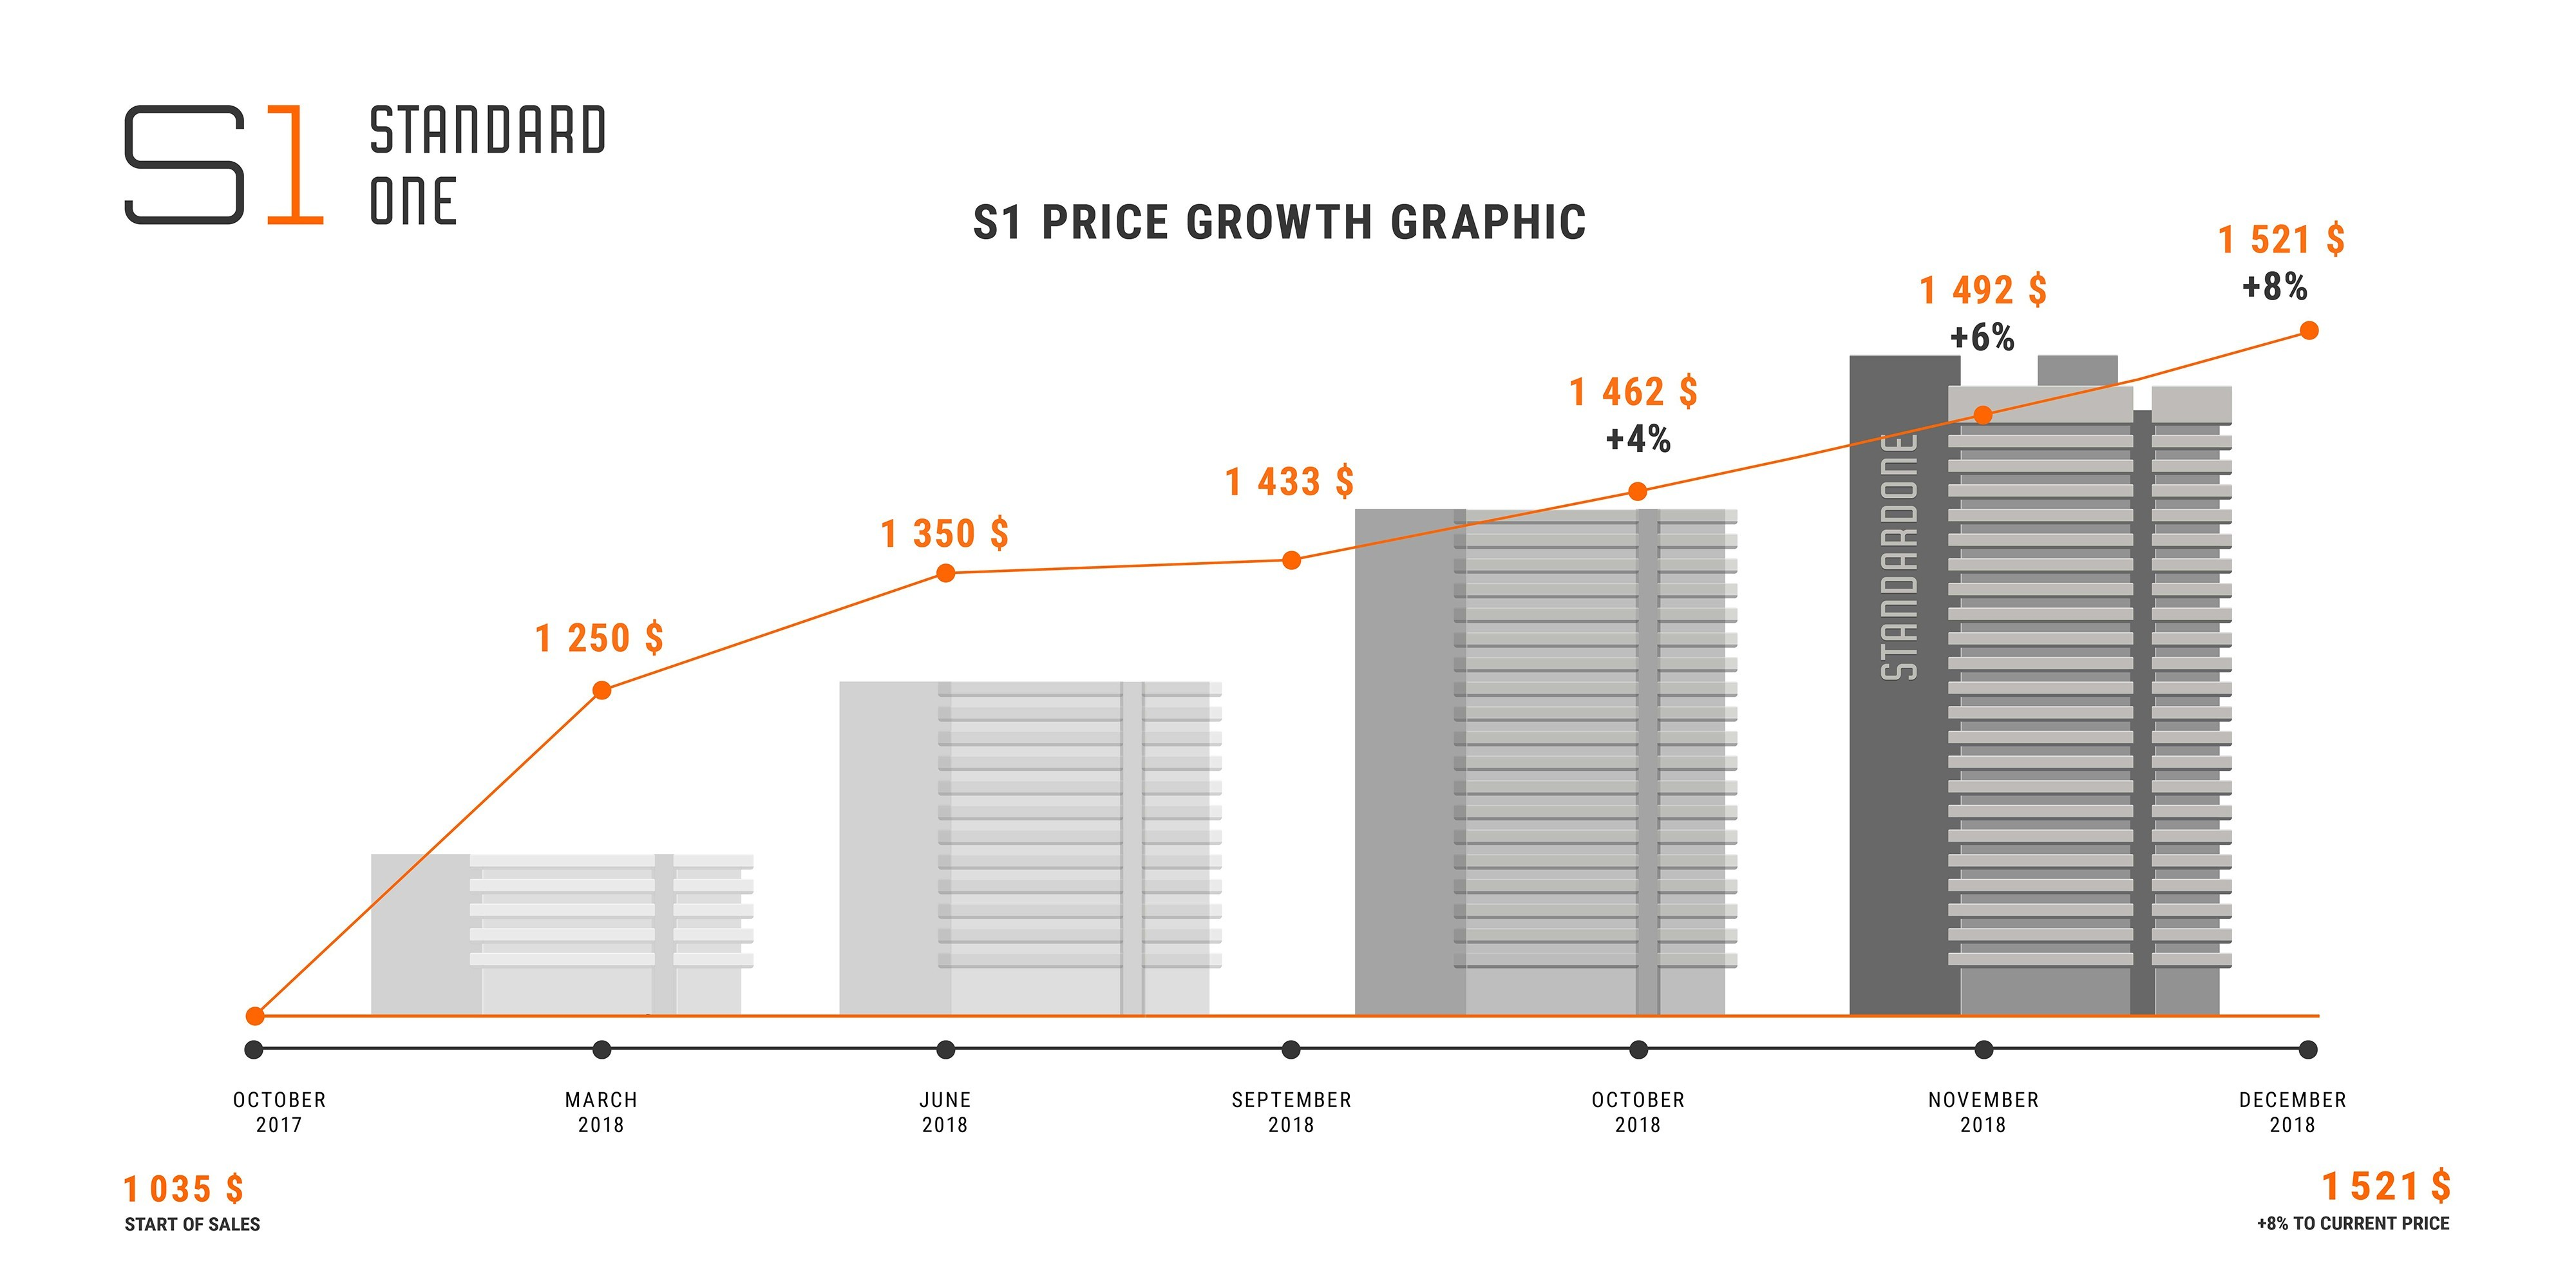 s1 price growth graphic